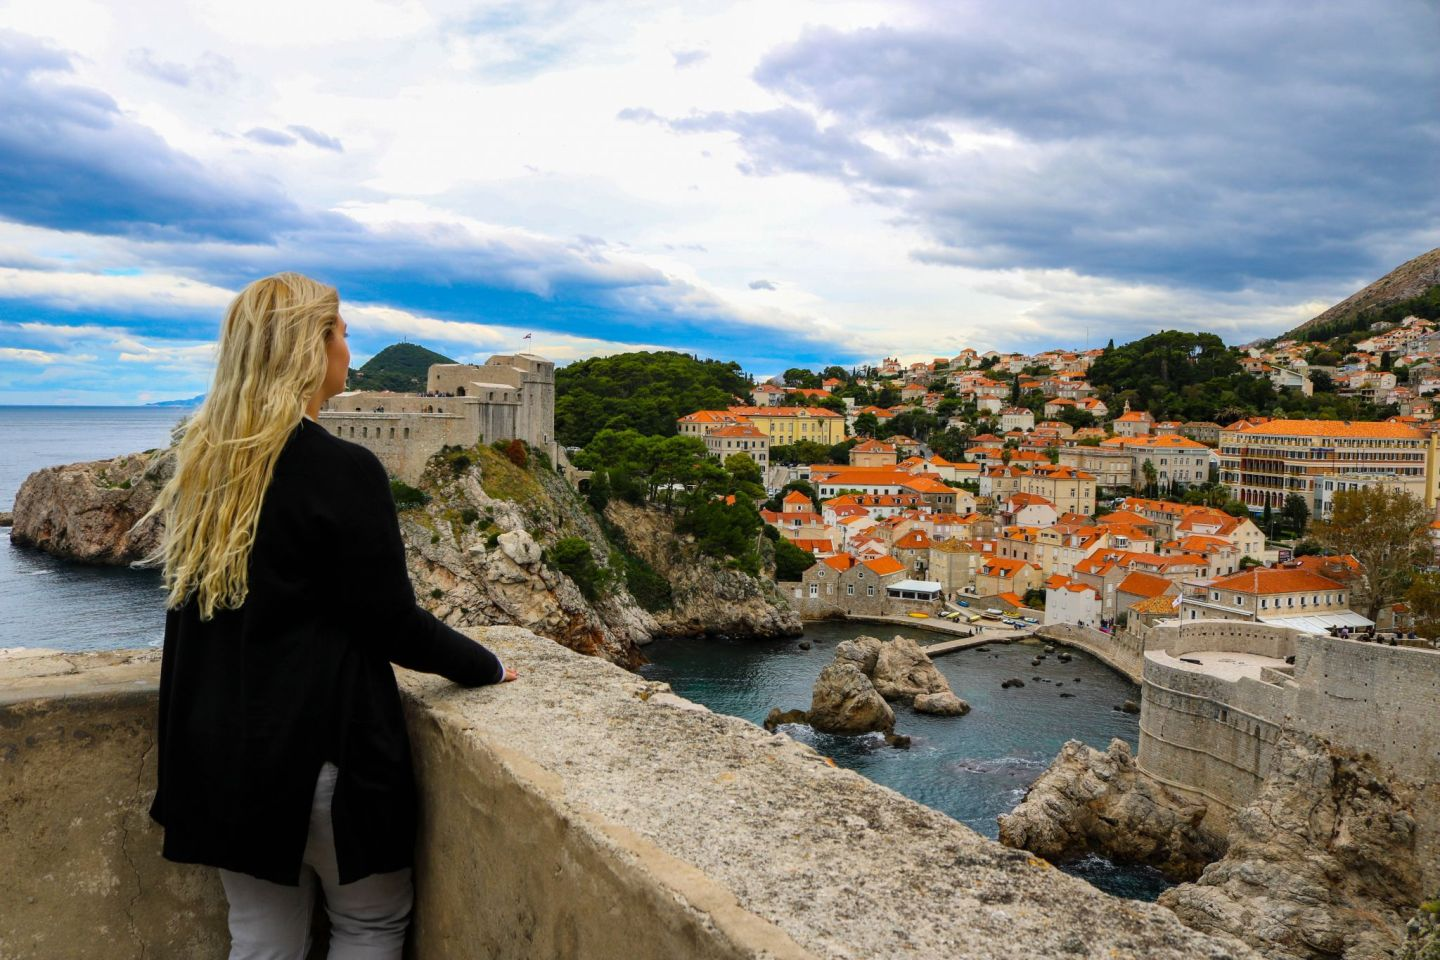 48 hours in Dubrovnik – A Guide to the Pearl of the Adriatic